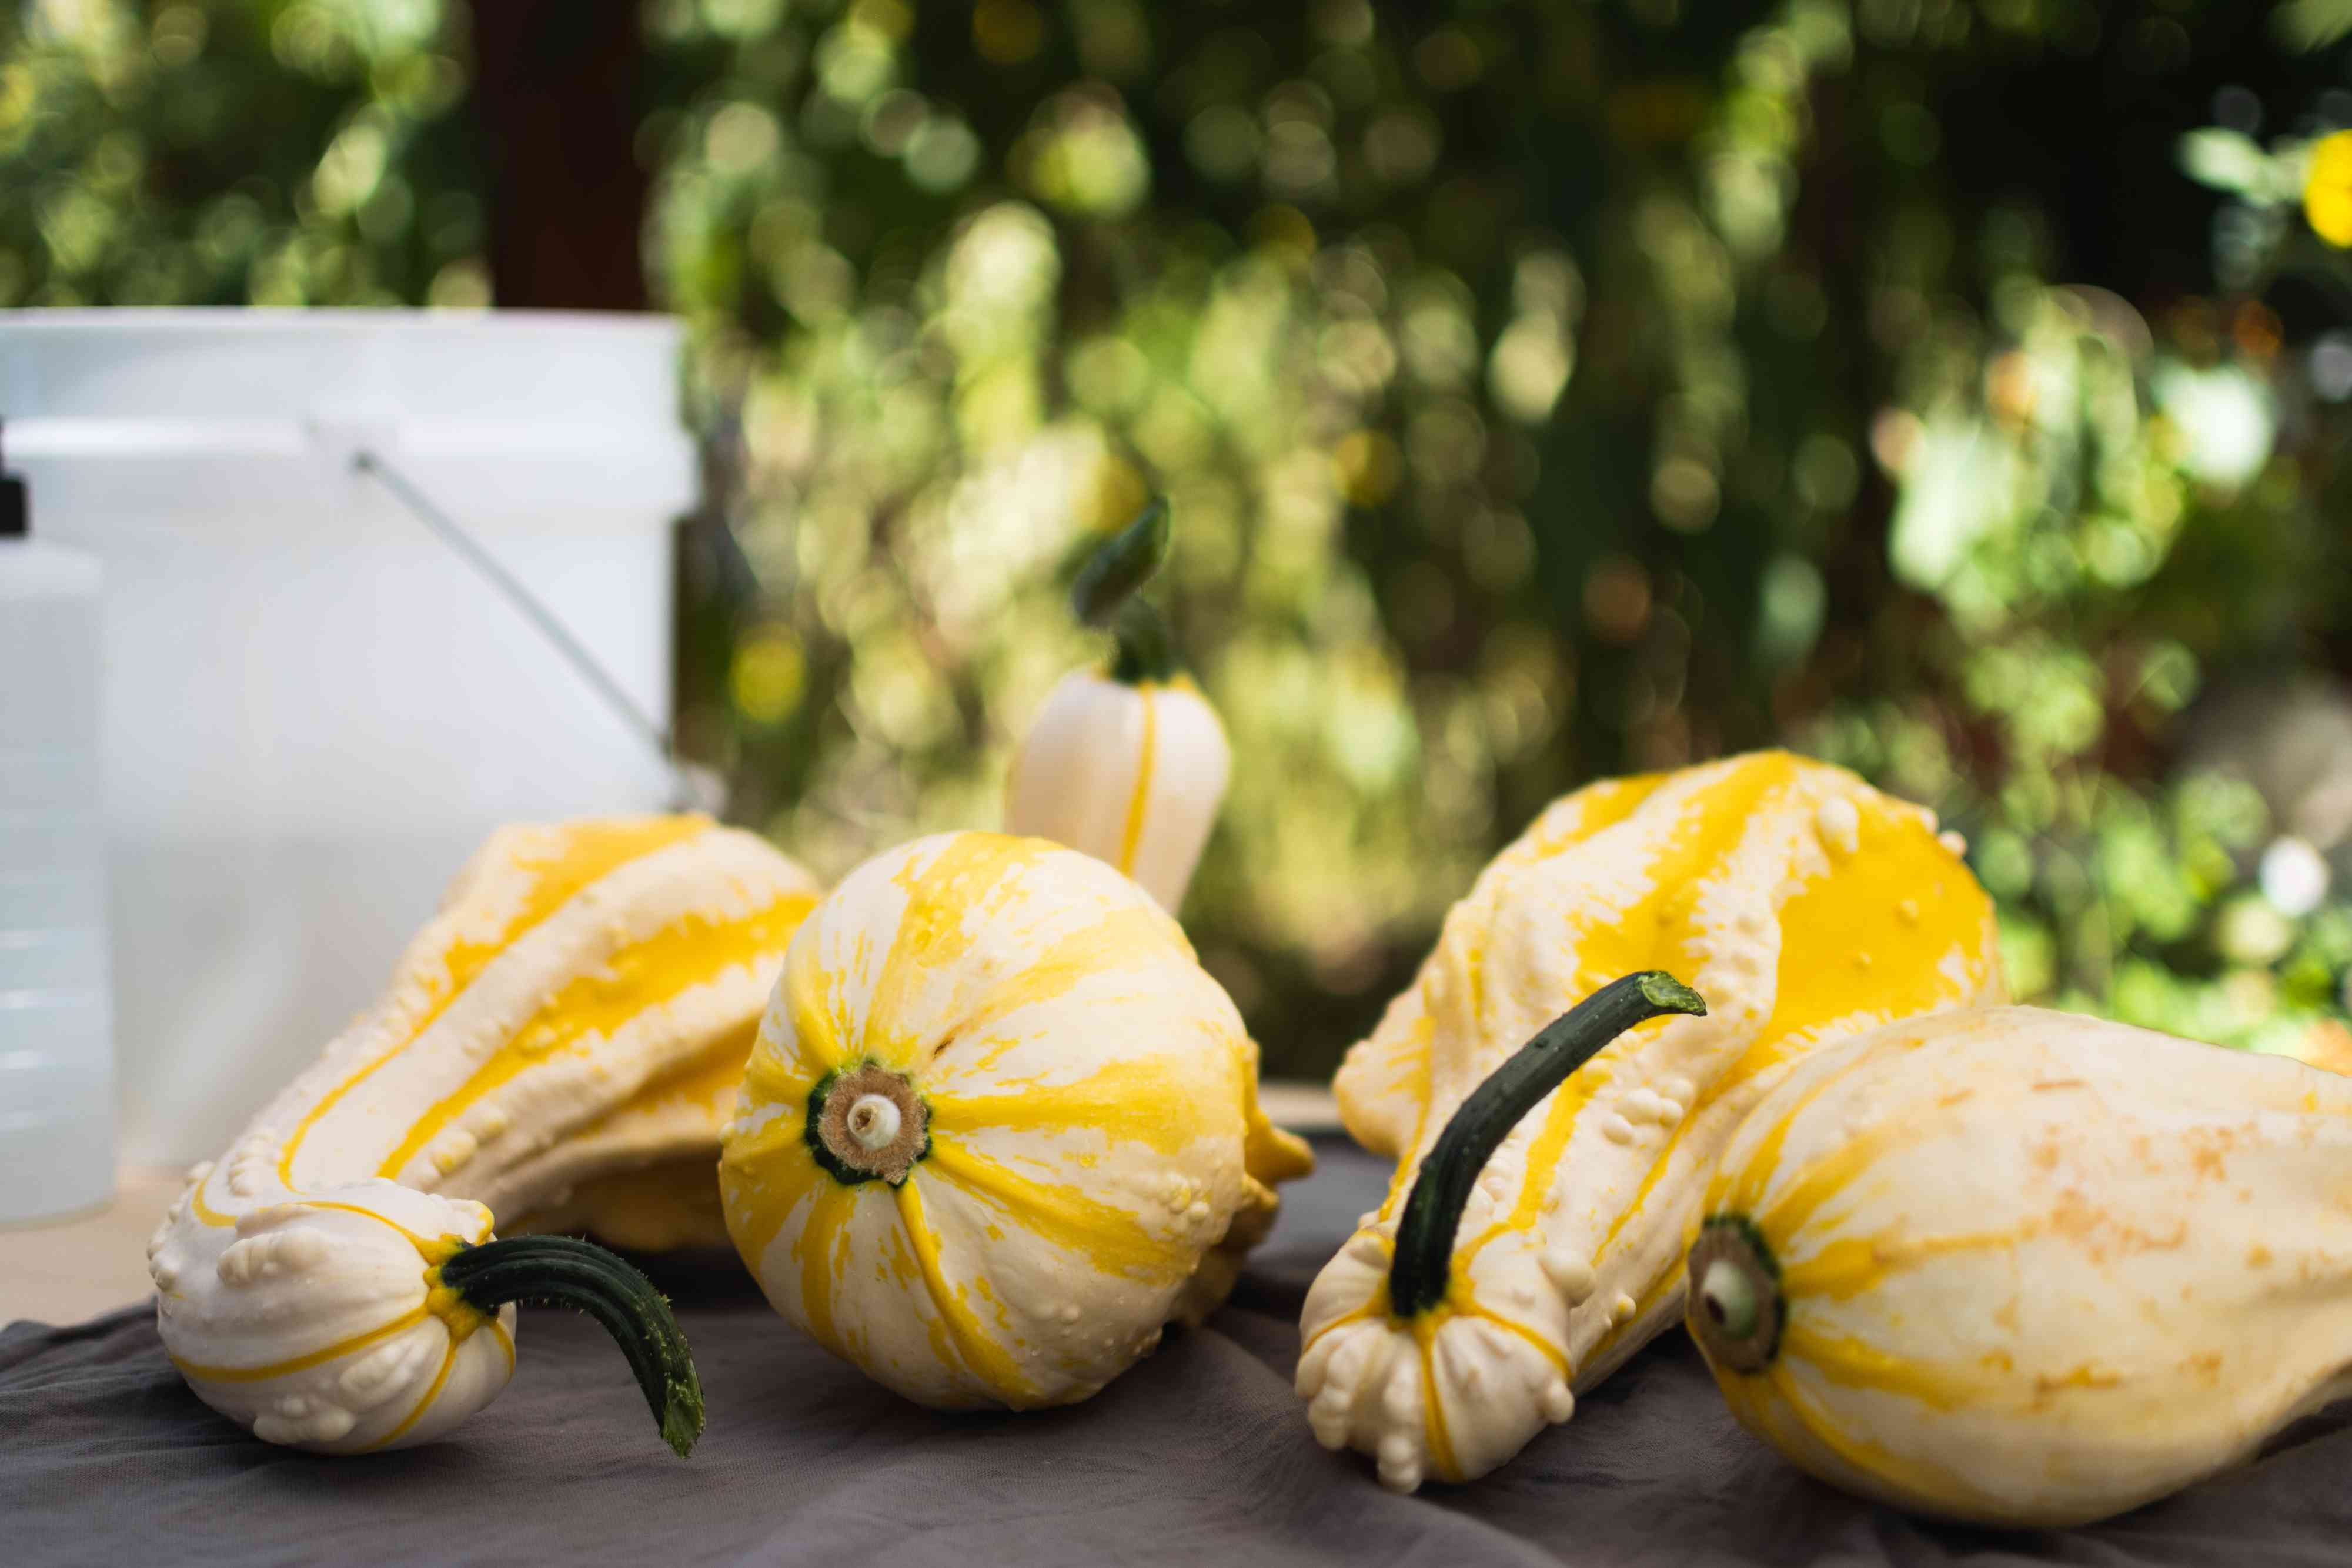 Yellow and white gourds placed outside on tabletop to dry in shade